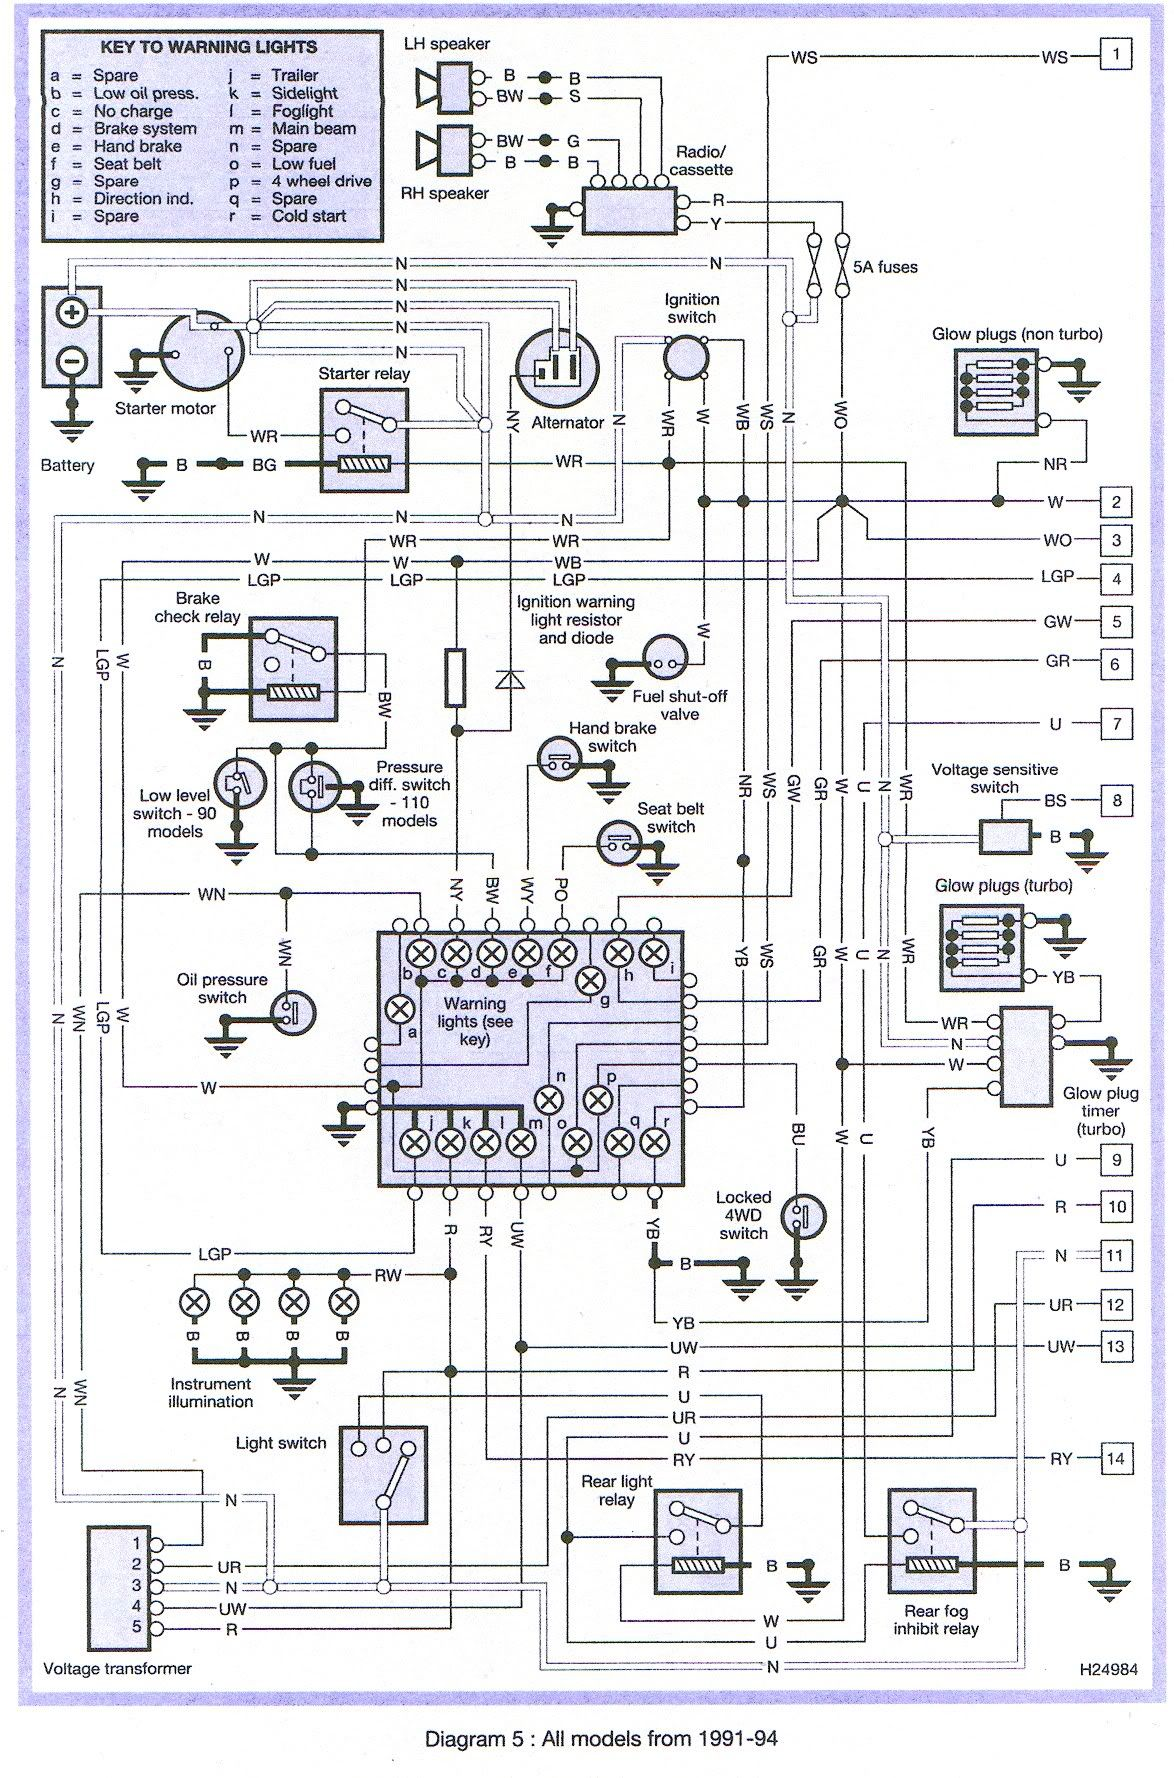 Land rover discovery wiring diagram manual repair with engine on wiring diagram for land rover defender Land Rover Freelander Wiring Diagram defender wiring diagram 200tdi